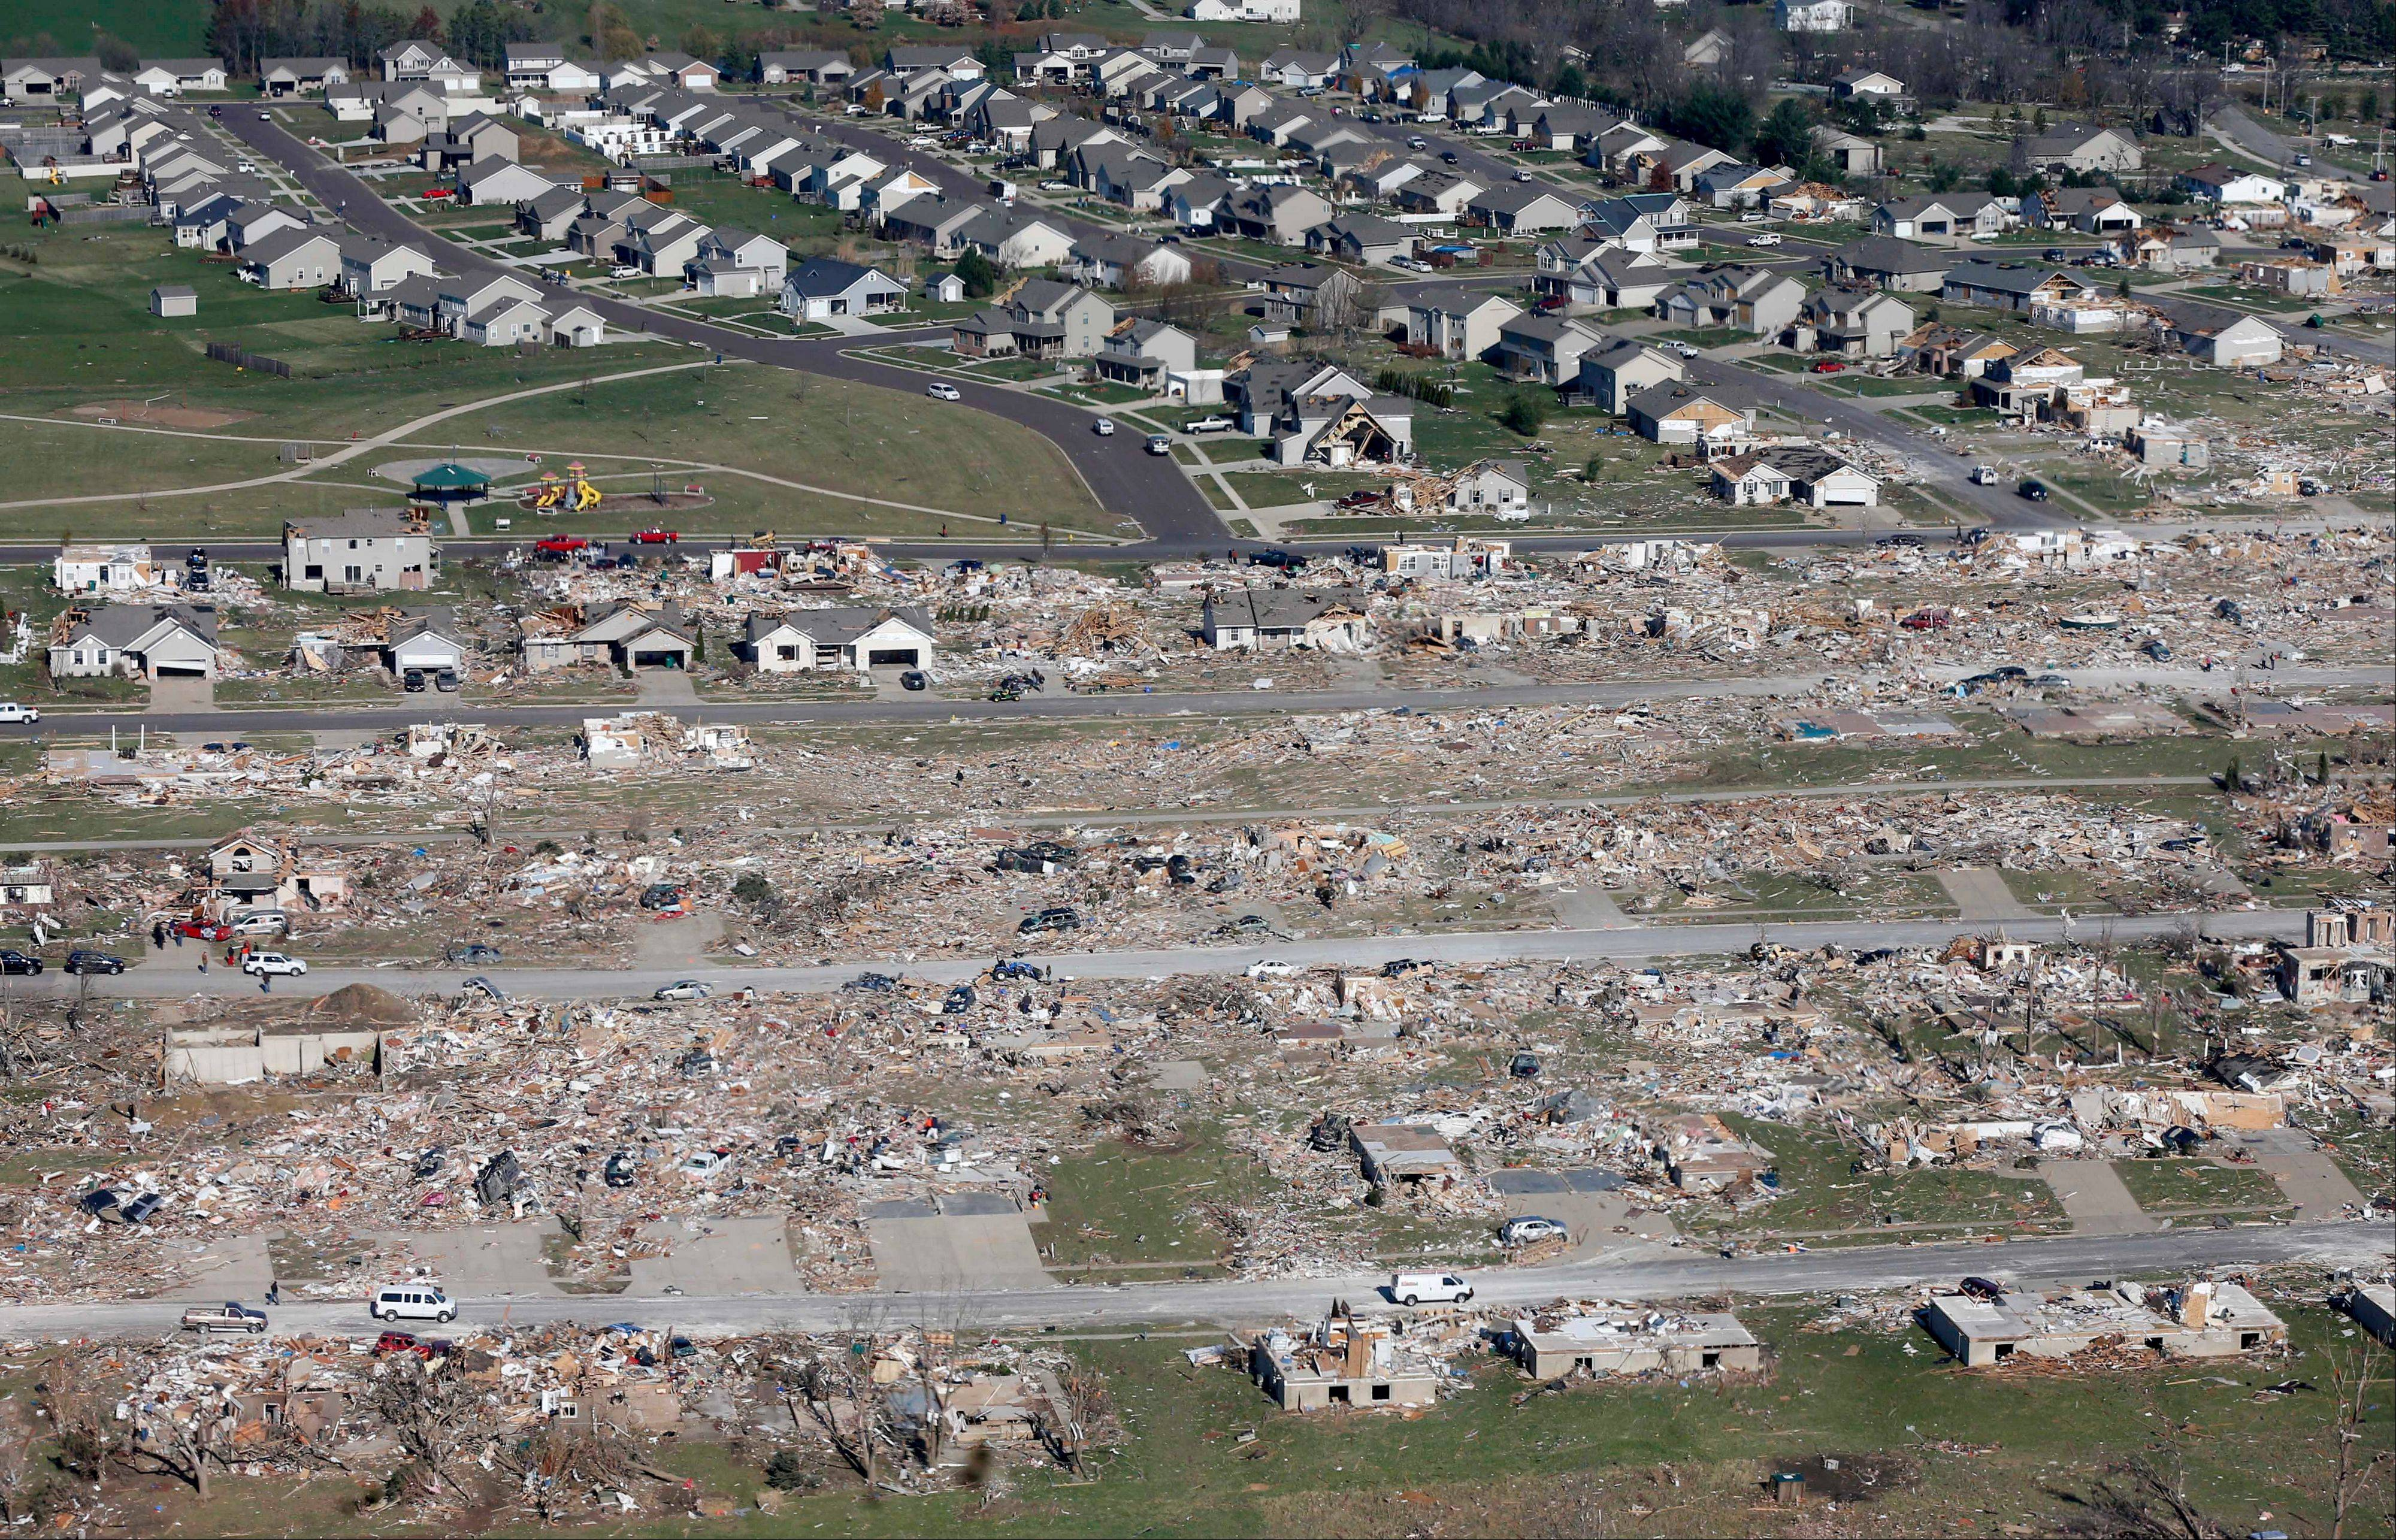 This aerial view on Monday, Nov. 18, 2013, shows homes that were untouched and destroyed by a tornado that hit the western Illinois town of Washington on Sunday. It was one of the worst-hit areas after intense storms and tornadoes swept through Illinois. The National Weather Service says the tornado that hit Washington had a preliminary rating of EF-4, meaning wind speeds of 170 mph to 190 mph.